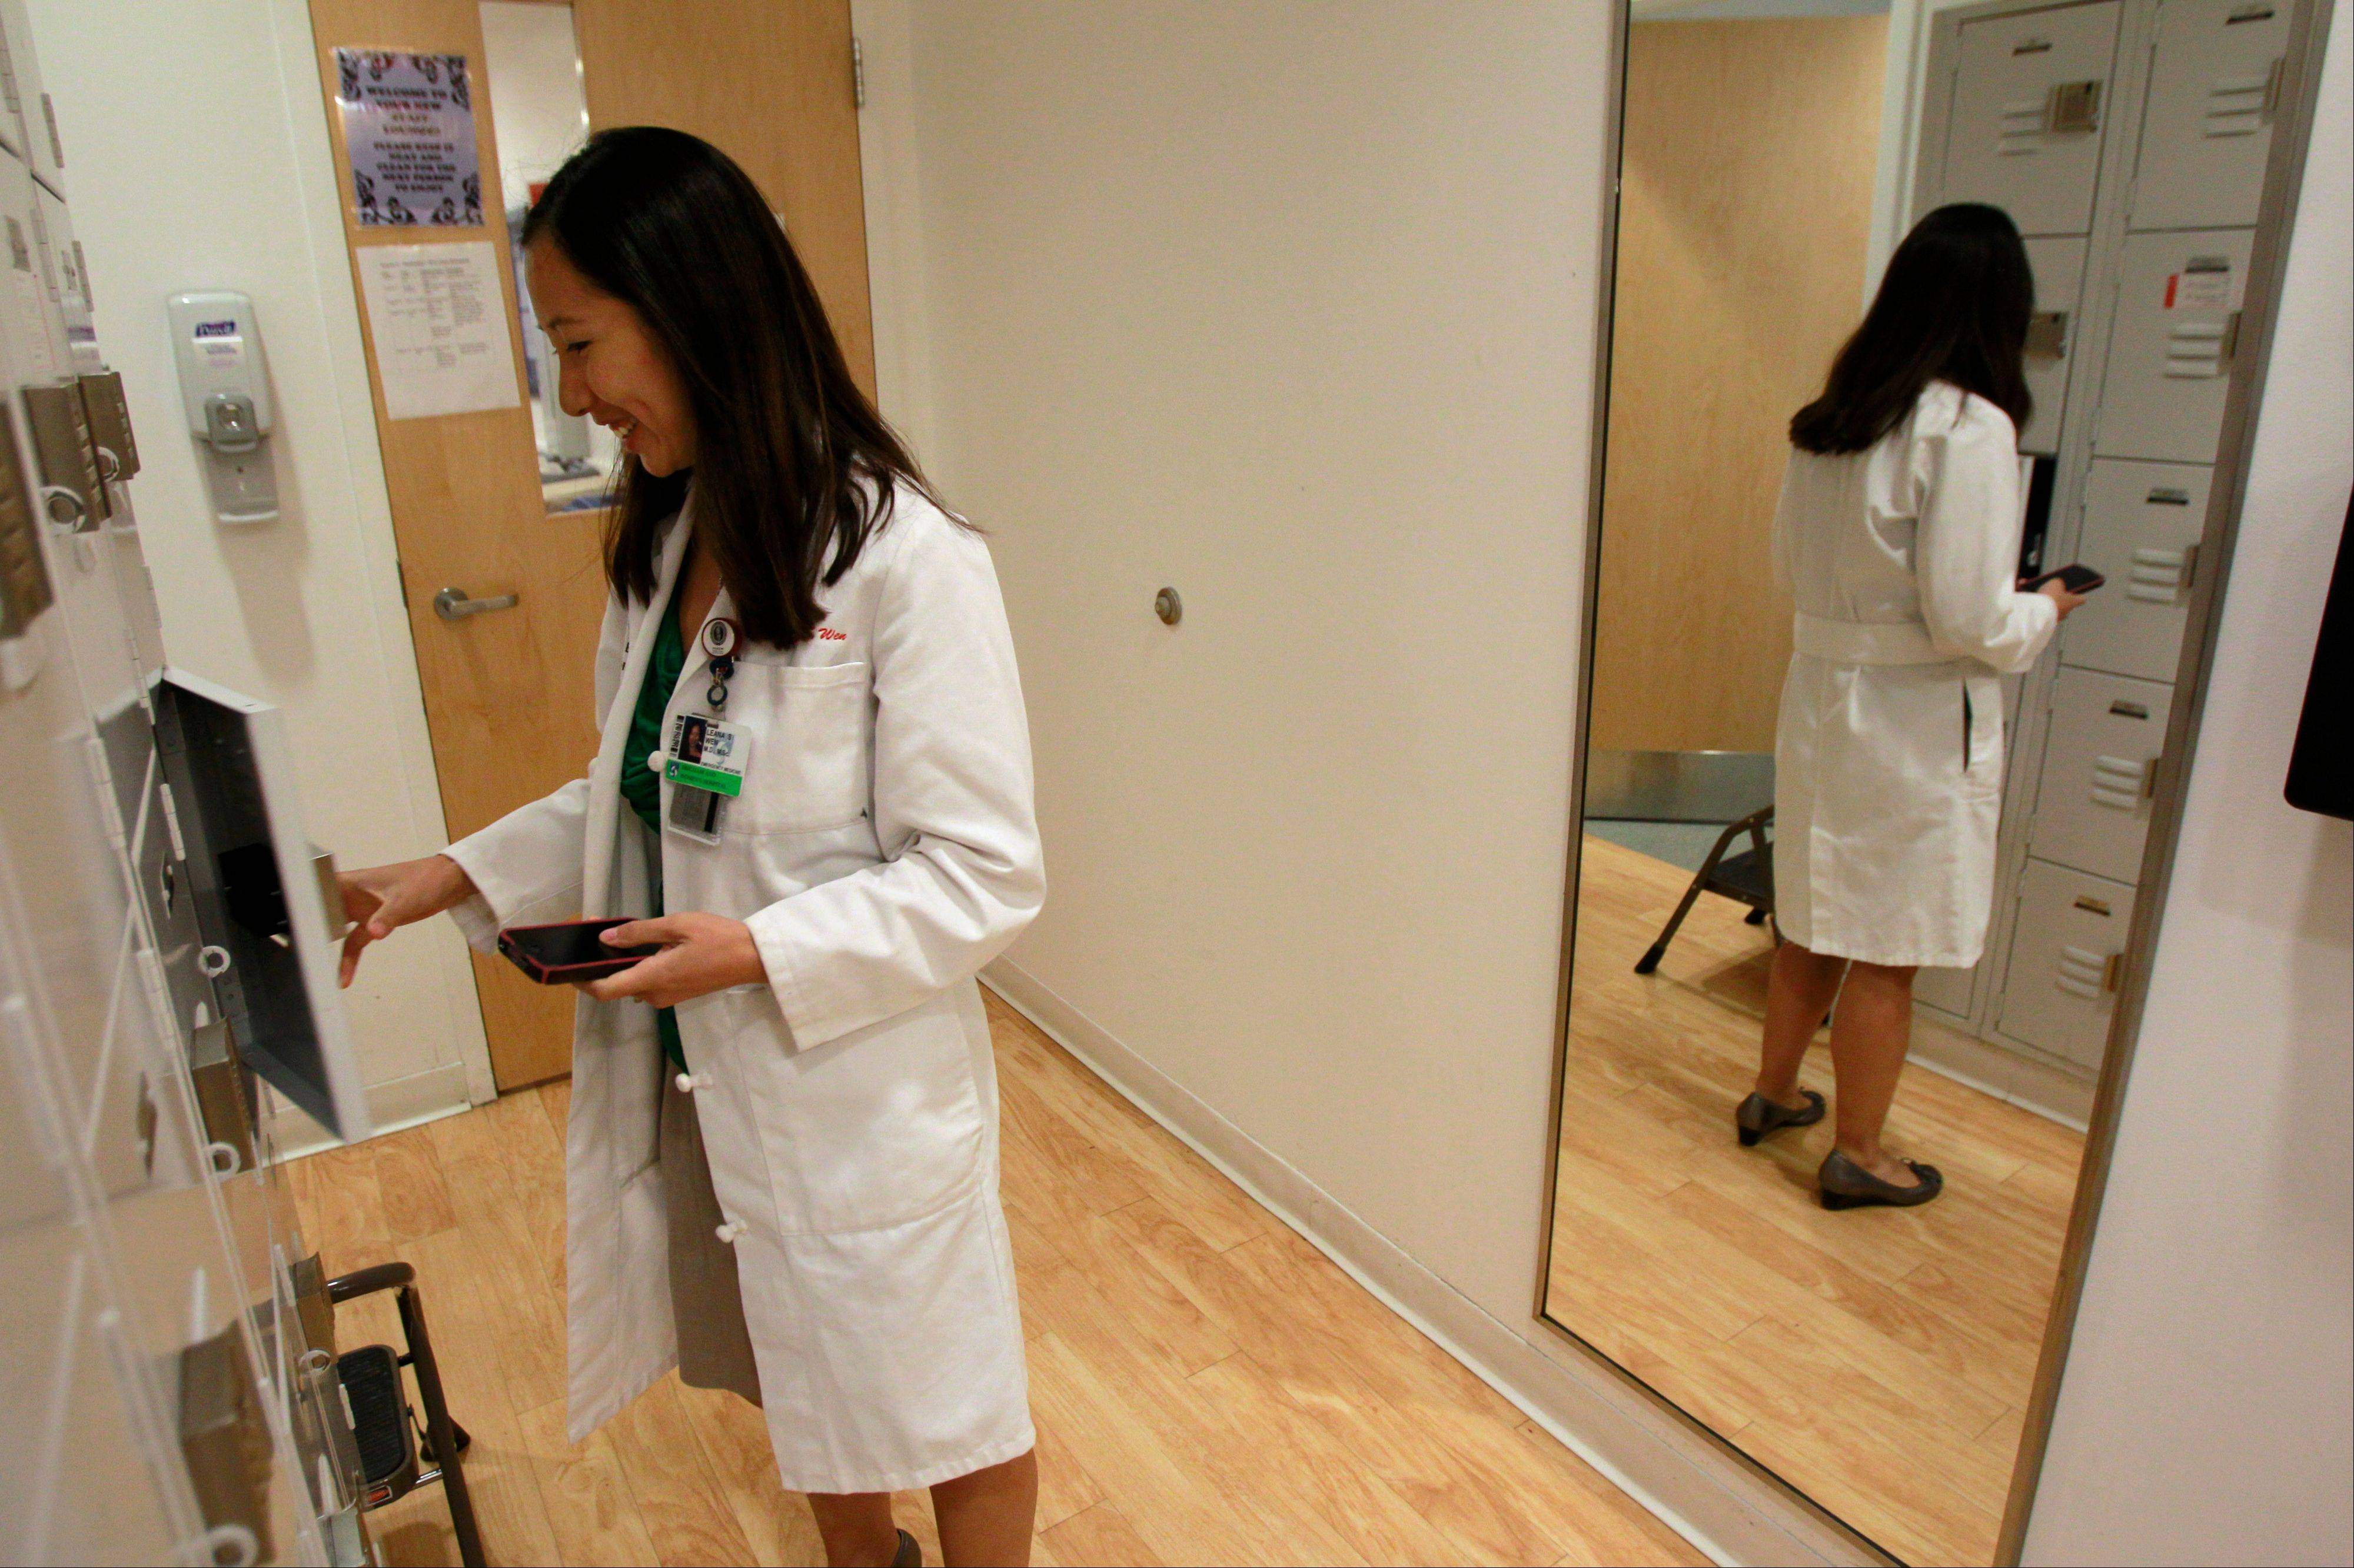 Leana Wen deposits some personal belongings in a locker in the emergency department at Brigham and Women's Hospital in Boston.